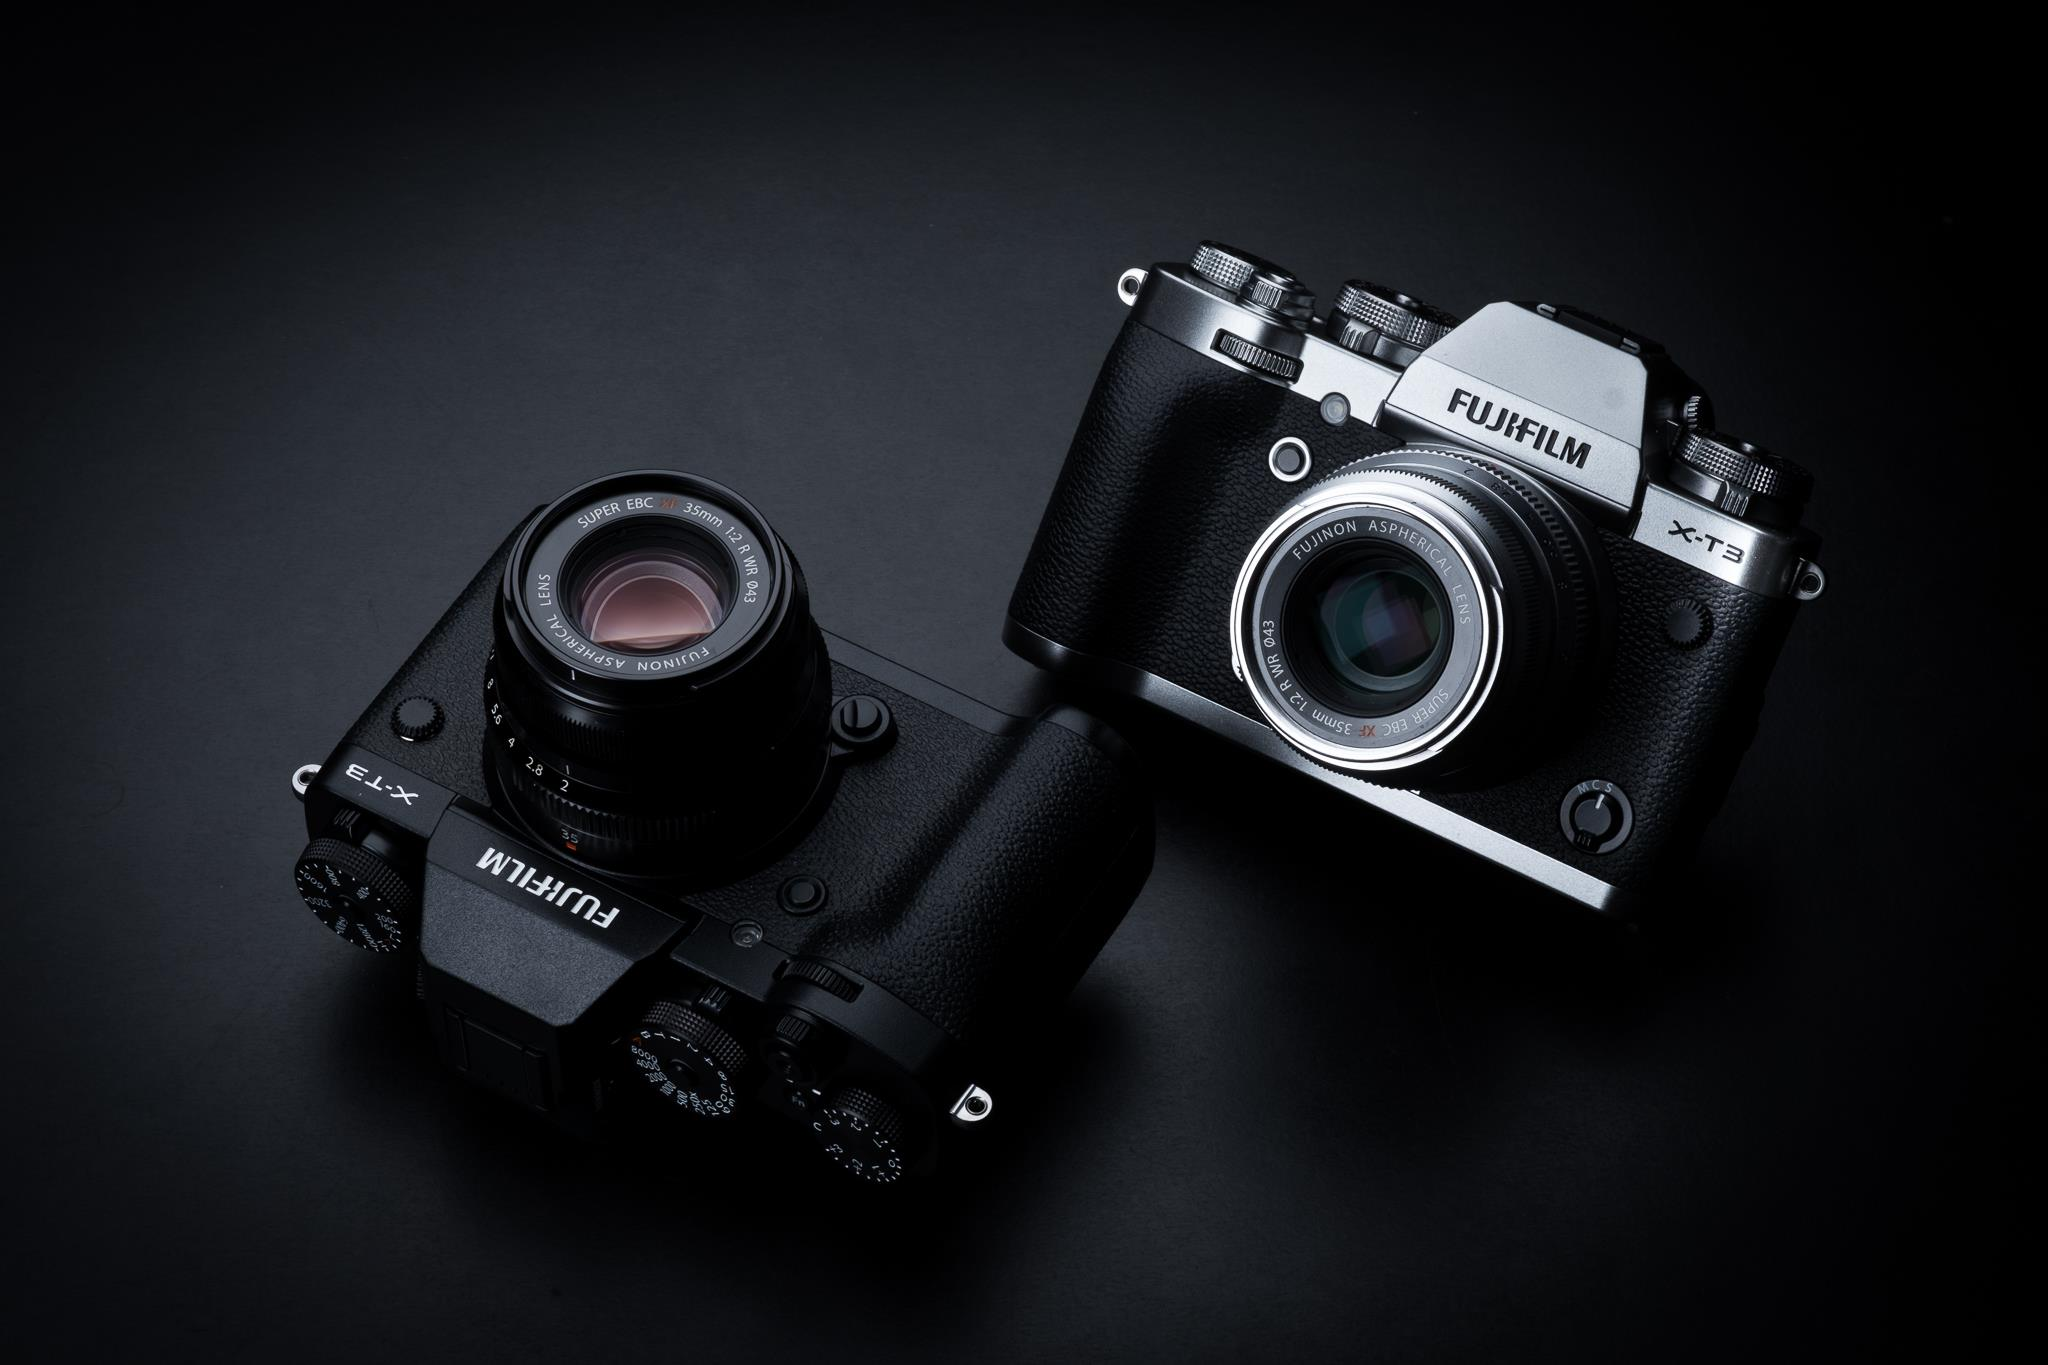 The Next Generation  Review: Fujifilm X-T3 | | FUJILOVE MAGAZINE